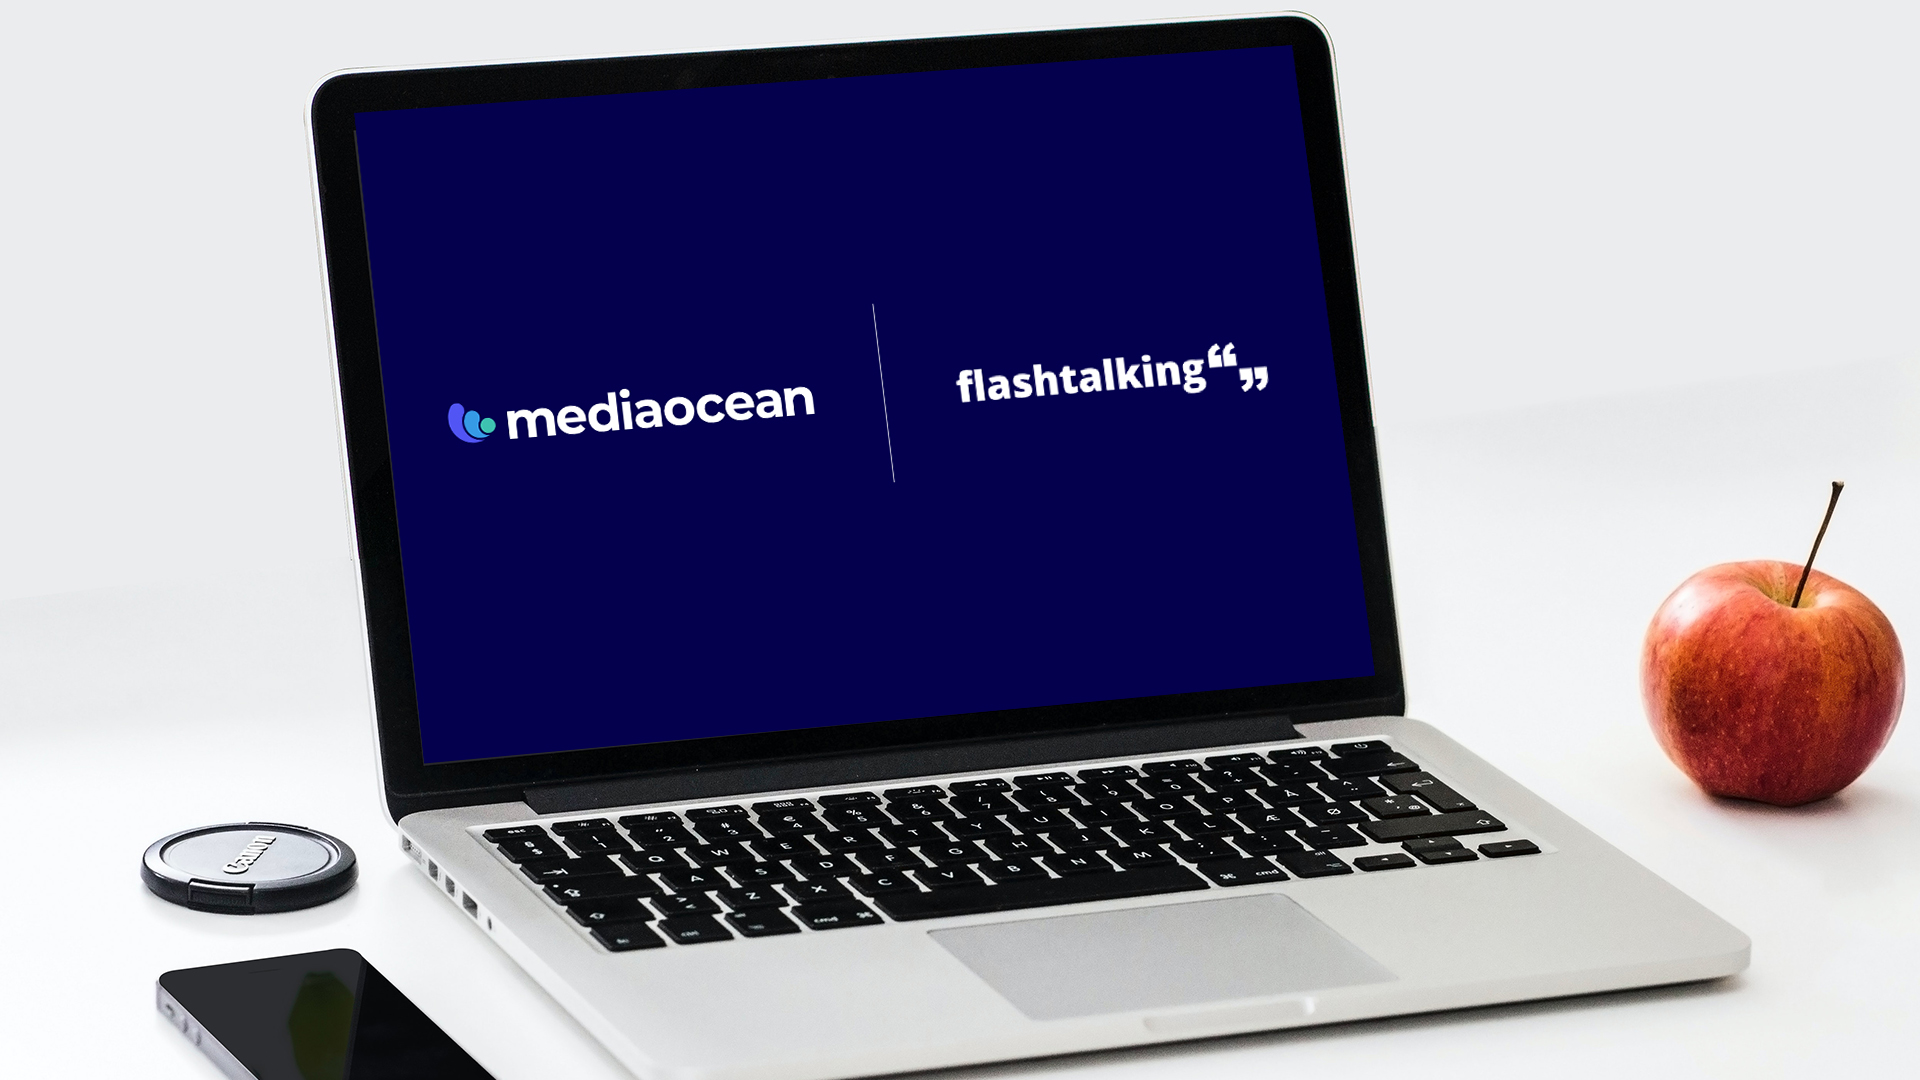 Mediaocean to acquire Flashtalking in push for omnichannel advertising